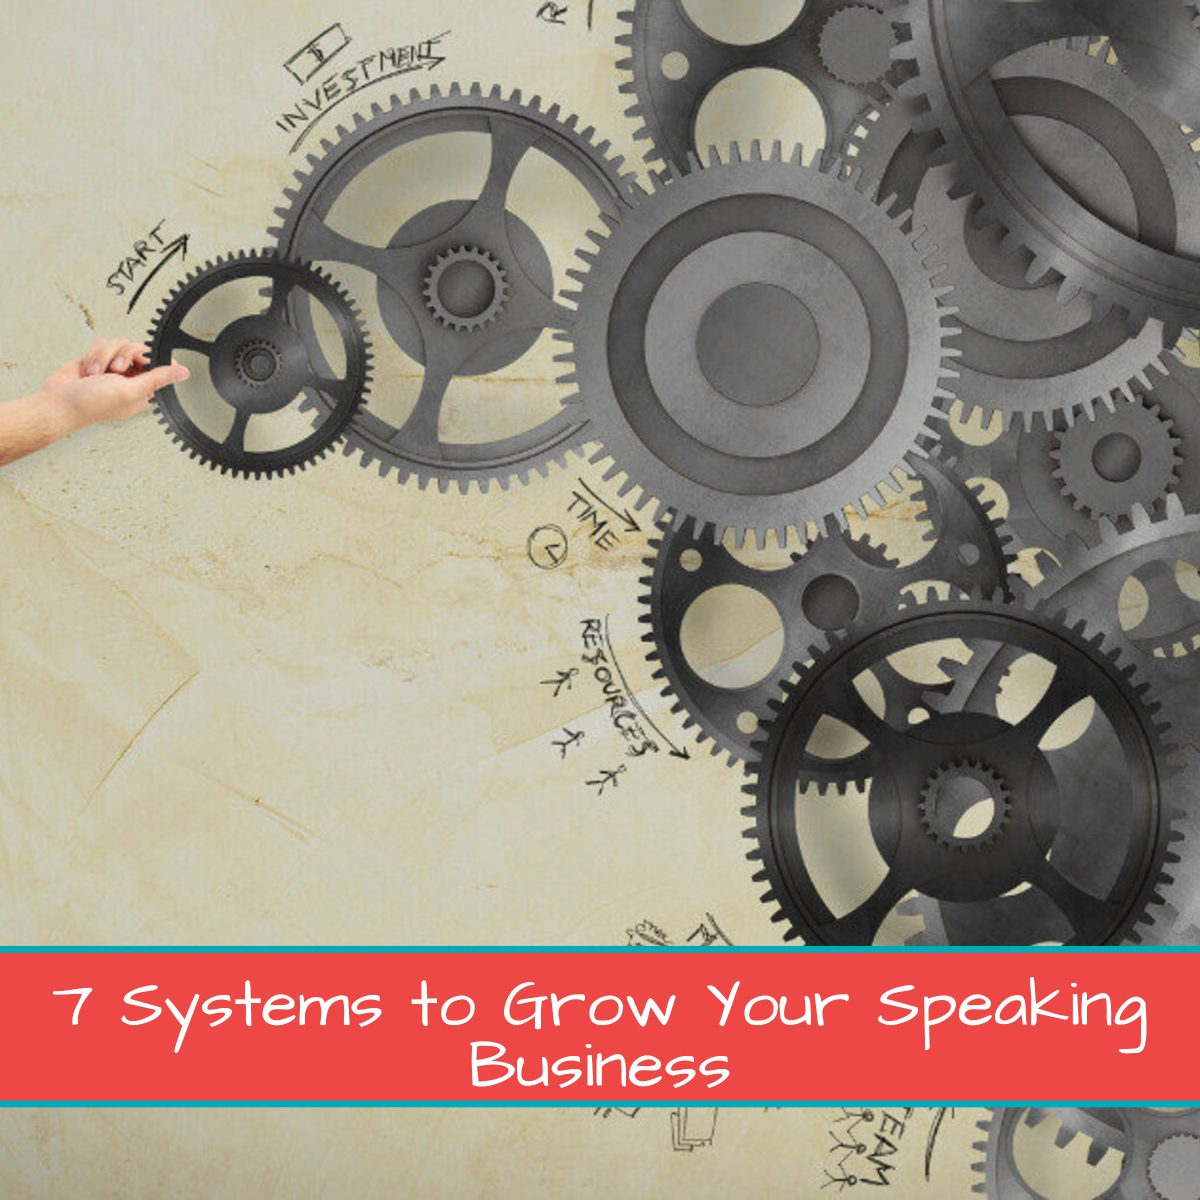 7 Systems to Grow Your Speaking Business Featured Image